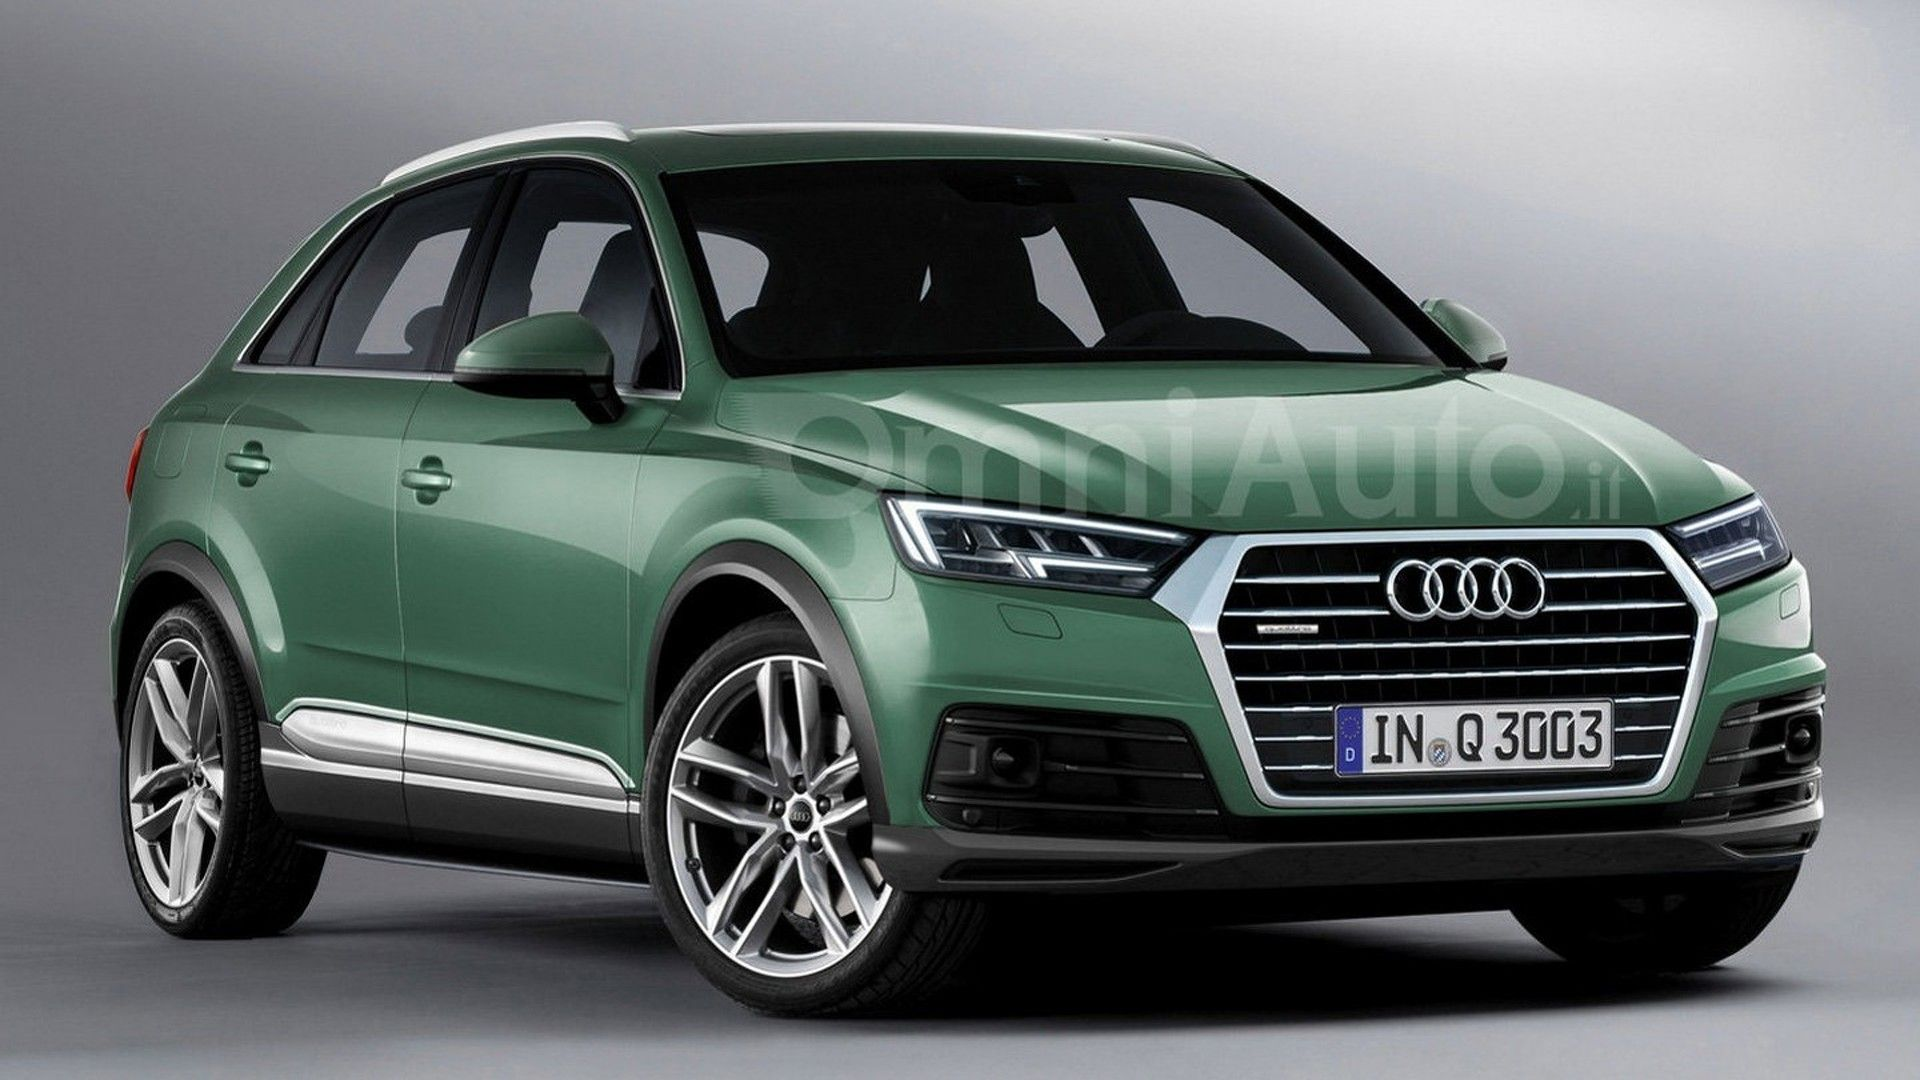 2018 Audi Q3 Colors Release Date Redesign Price Audi Does Not